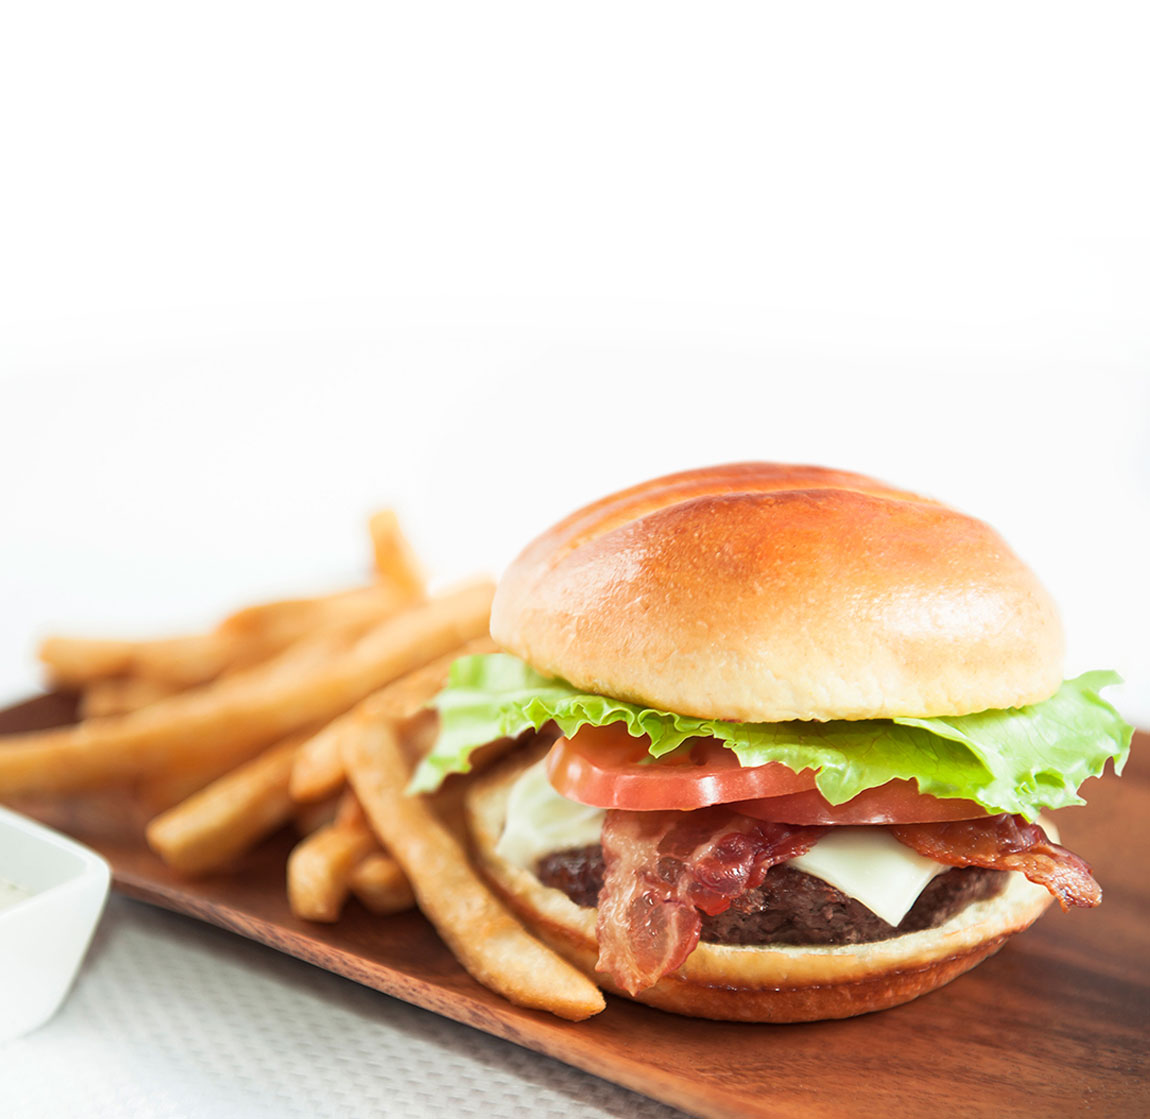 Burger and fries on a square plate.